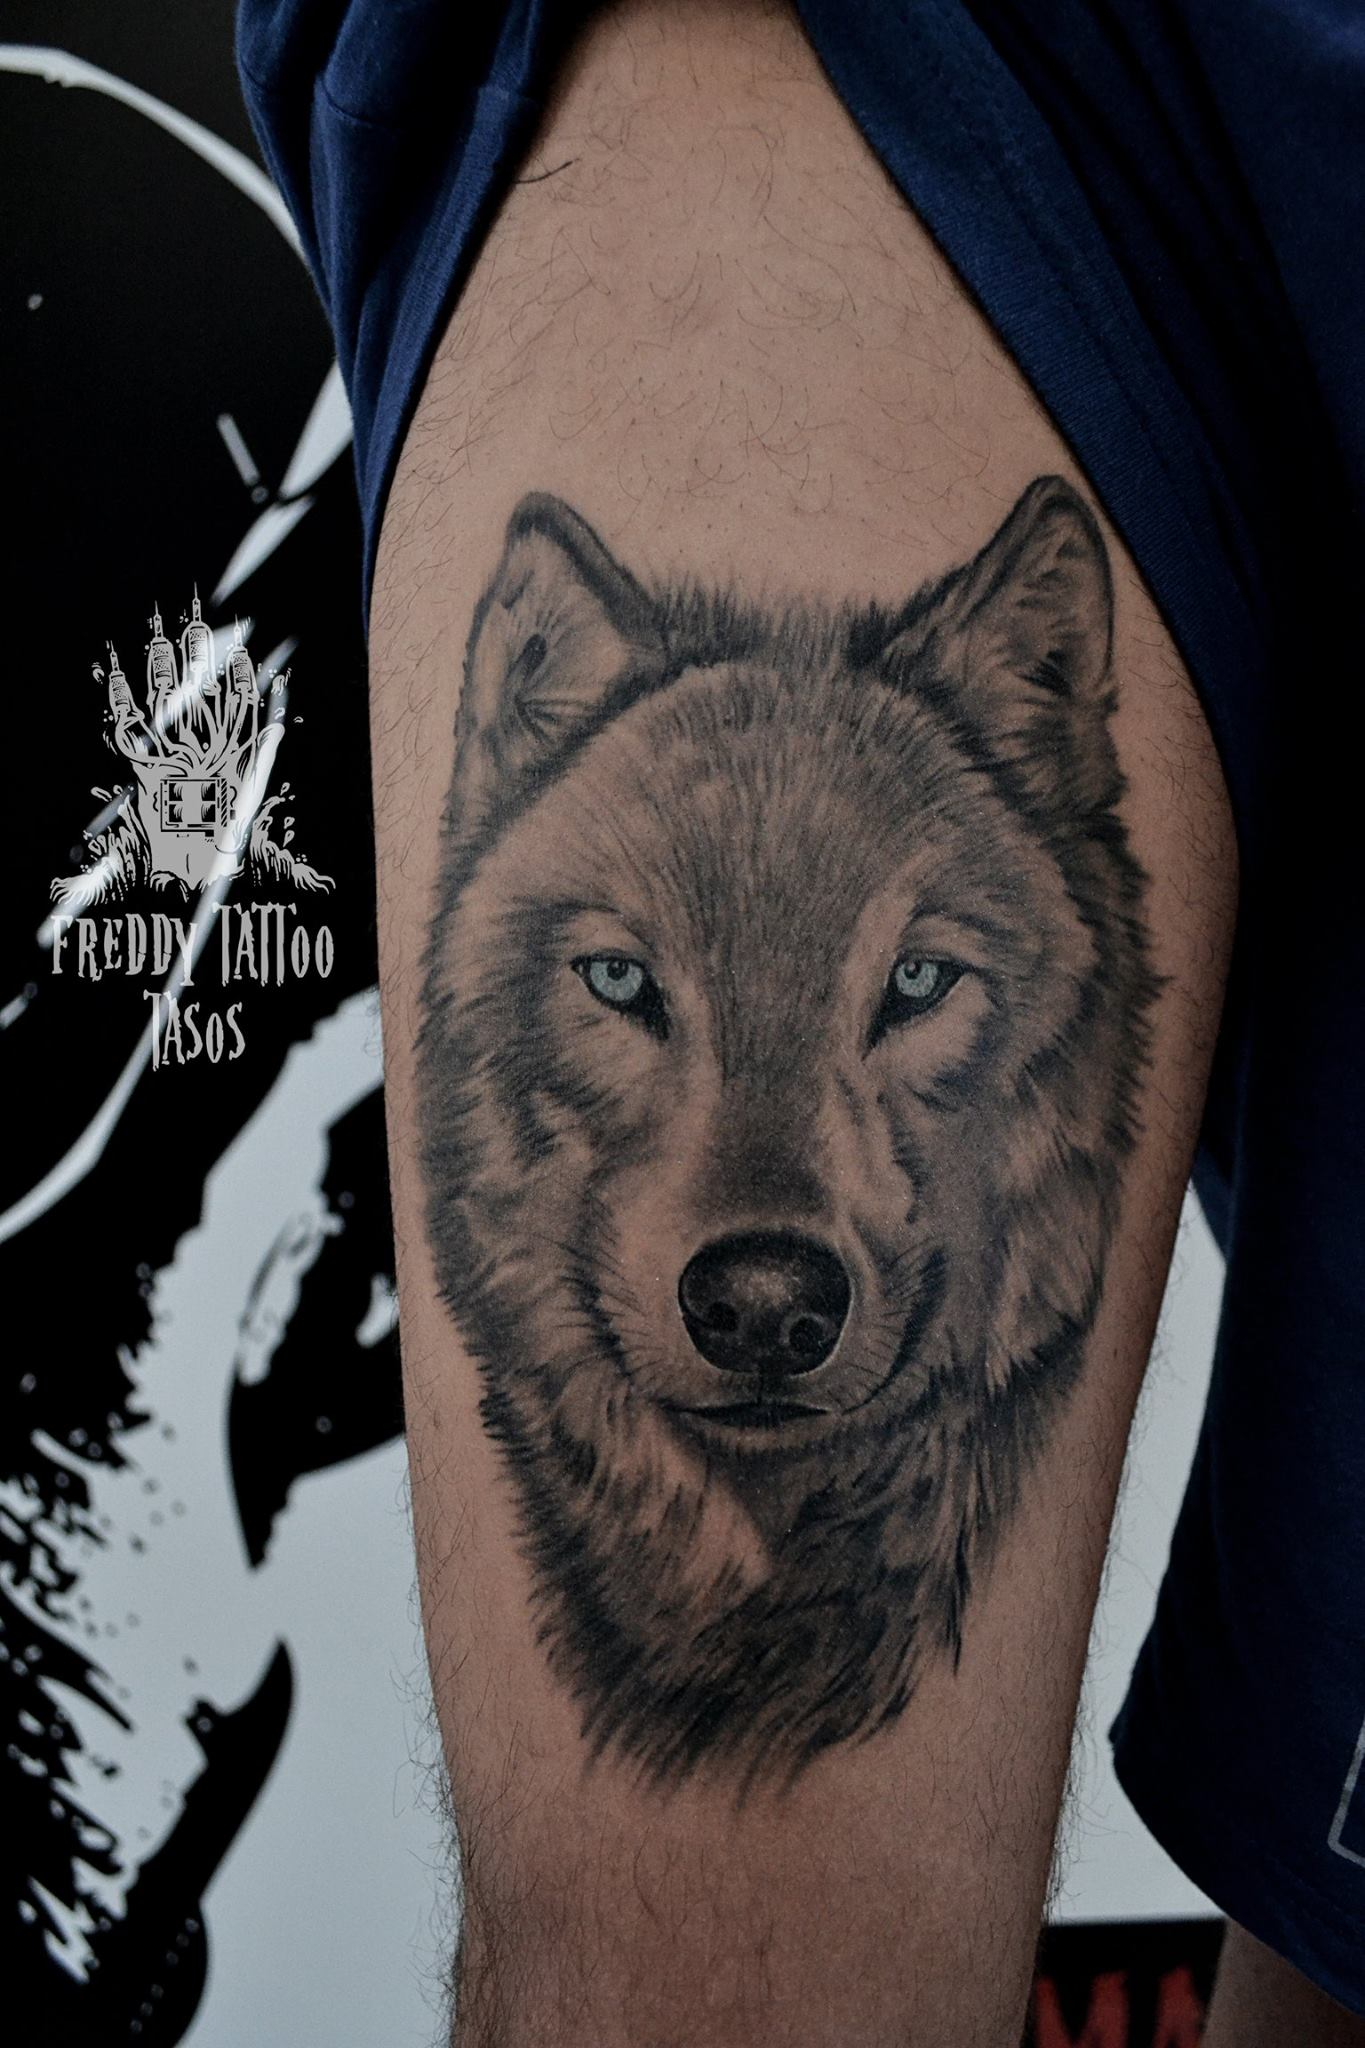 Tasos Freddy Tattoo Studio – Tattoo 2003